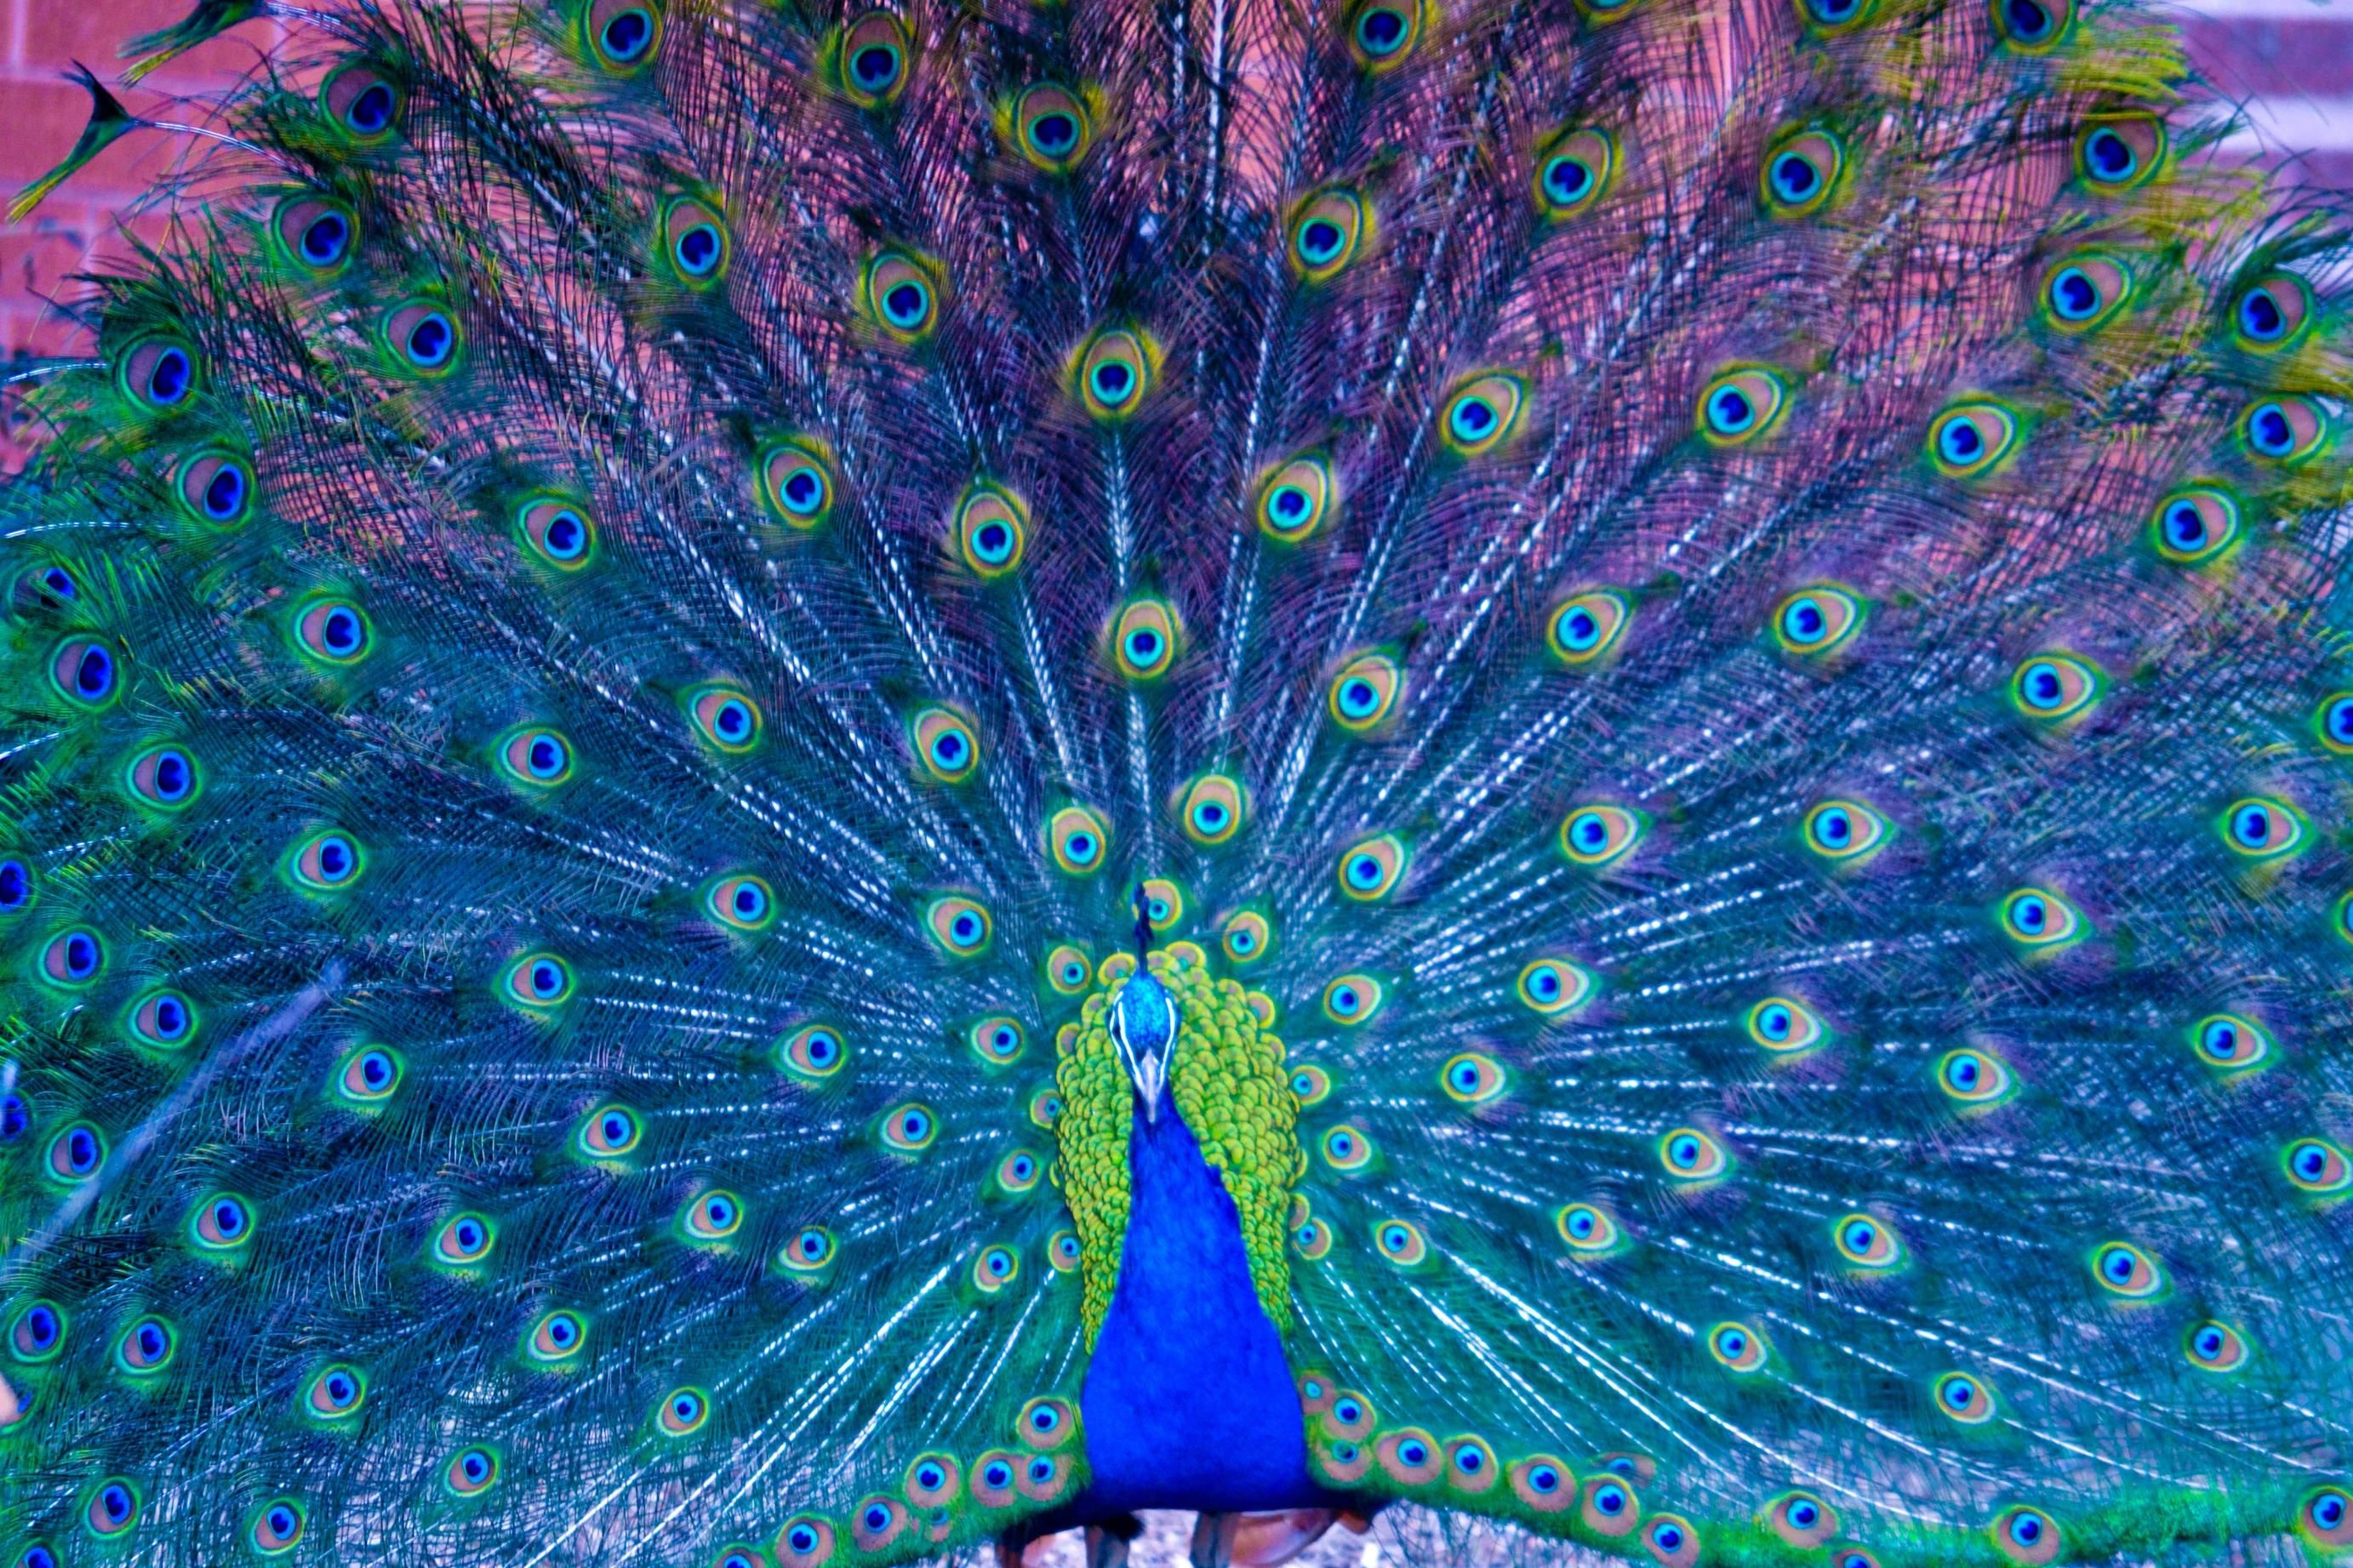 peacock hd wallpapers backgrounds wallpaper | desktop wallpaper